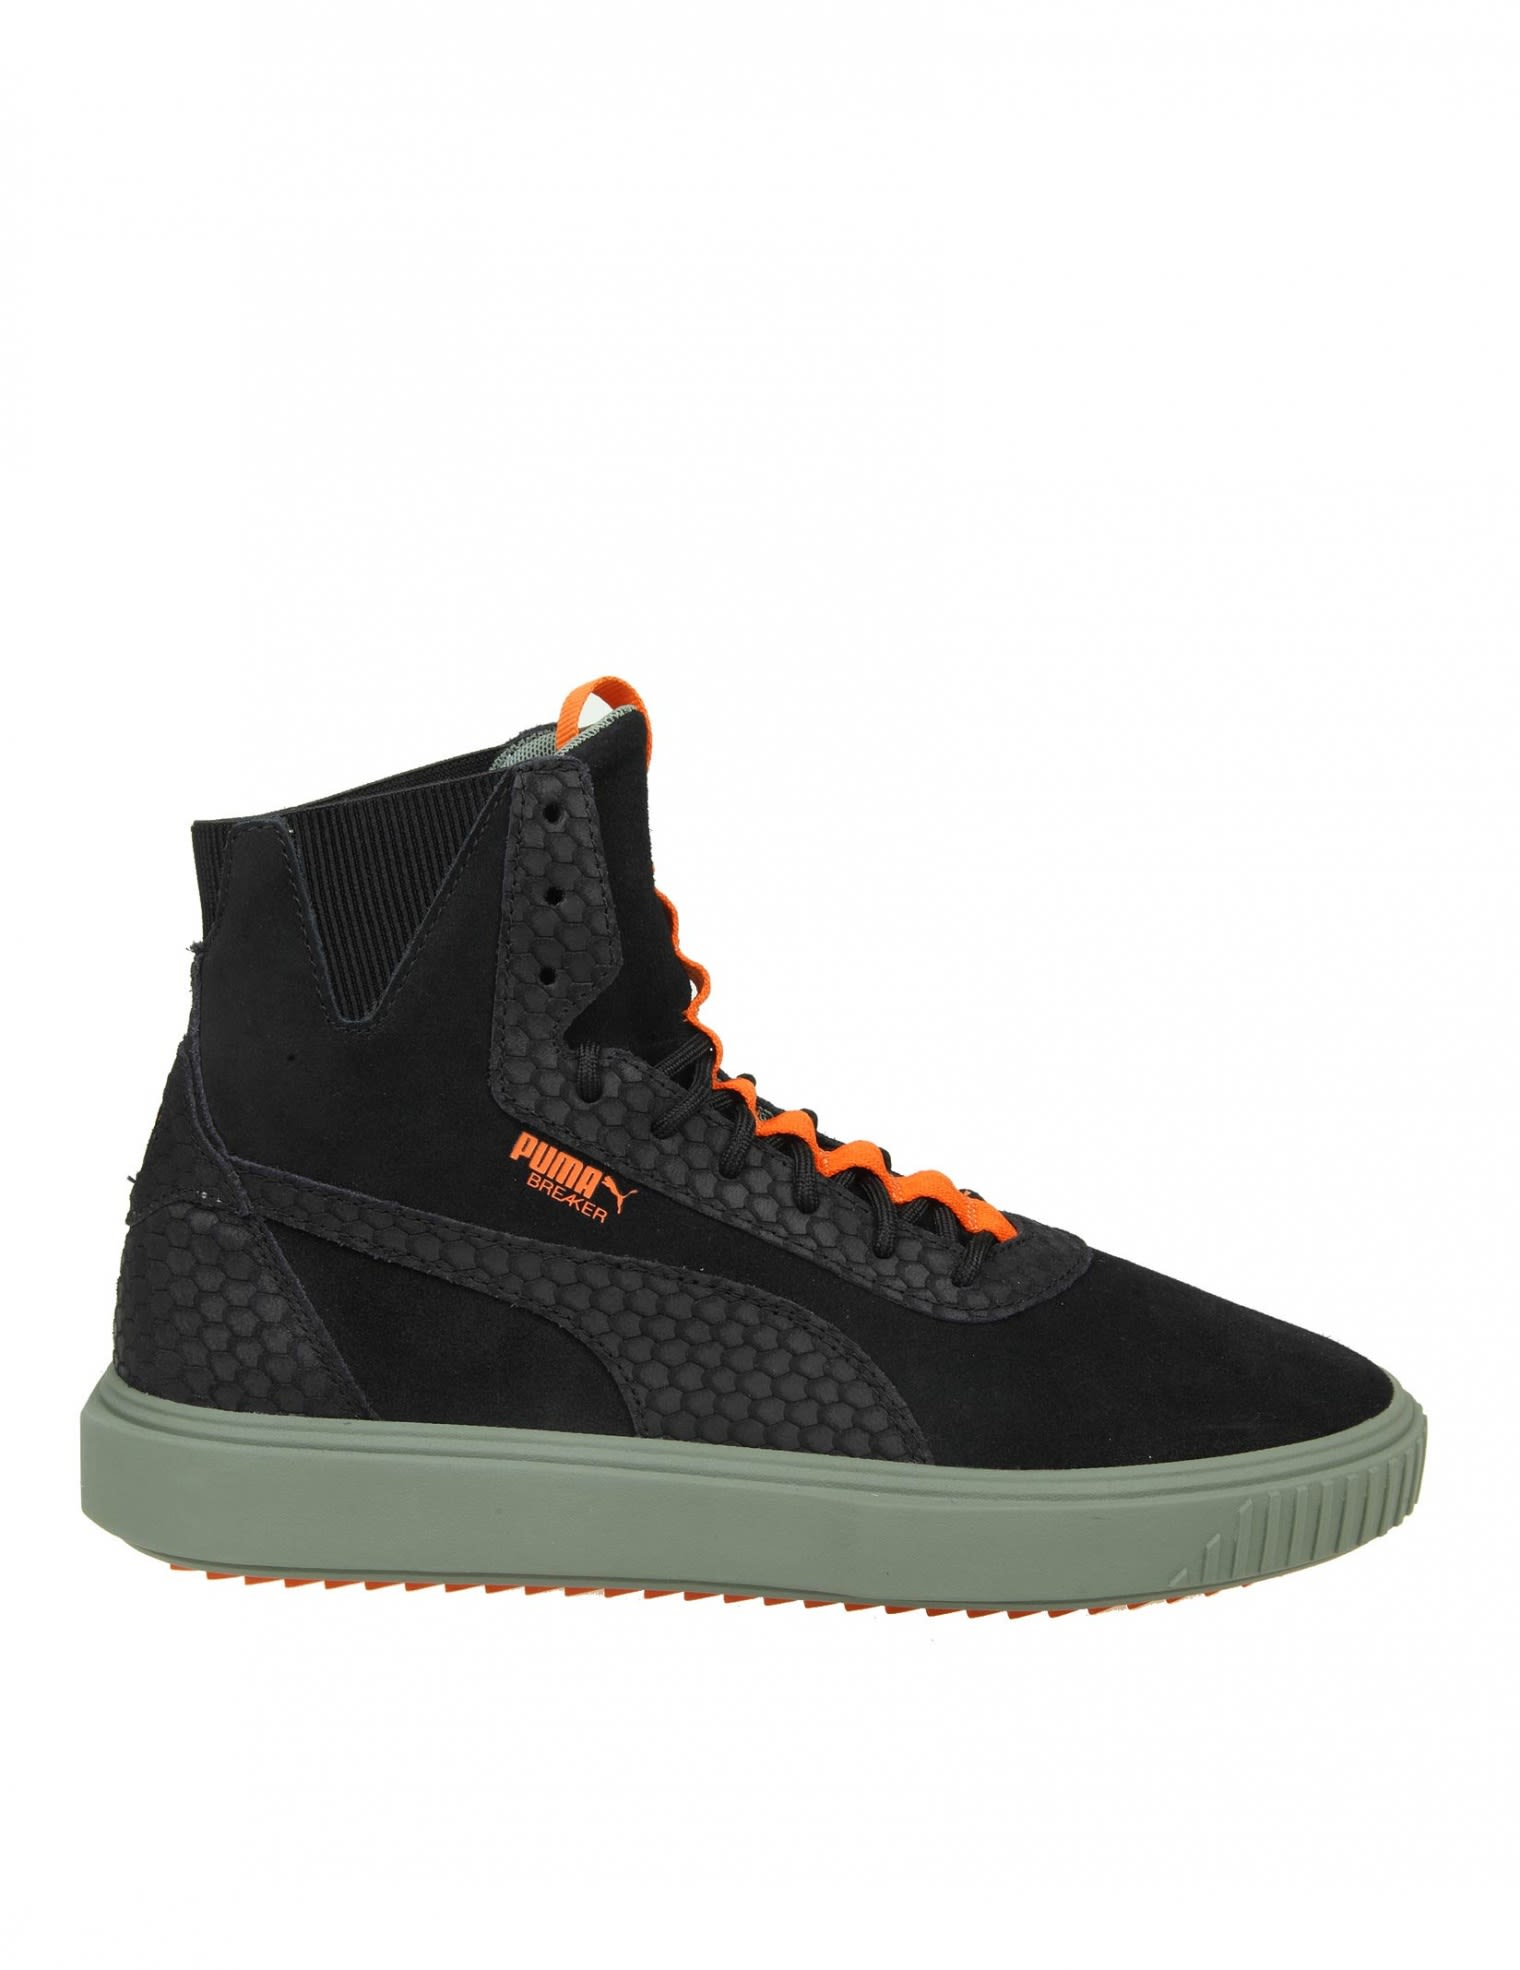 Puma Sneakers Breaker Hi Fight Or Fight Trainer Boots